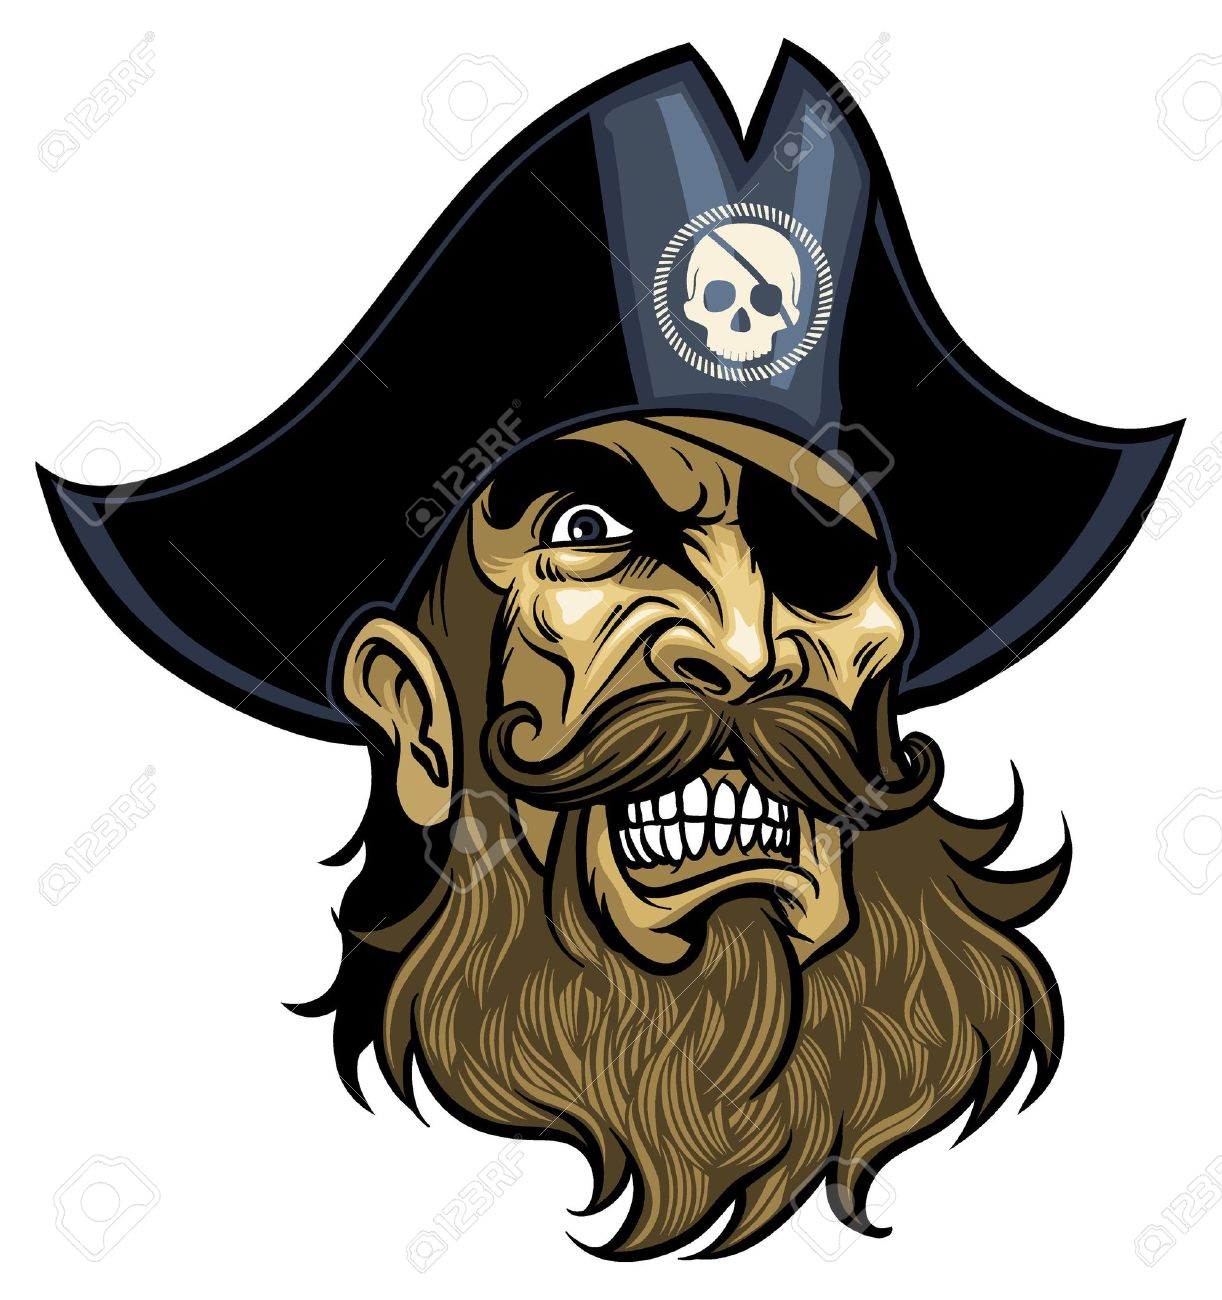 Angry Pirate face, wearing hat and eye patch - 18967632